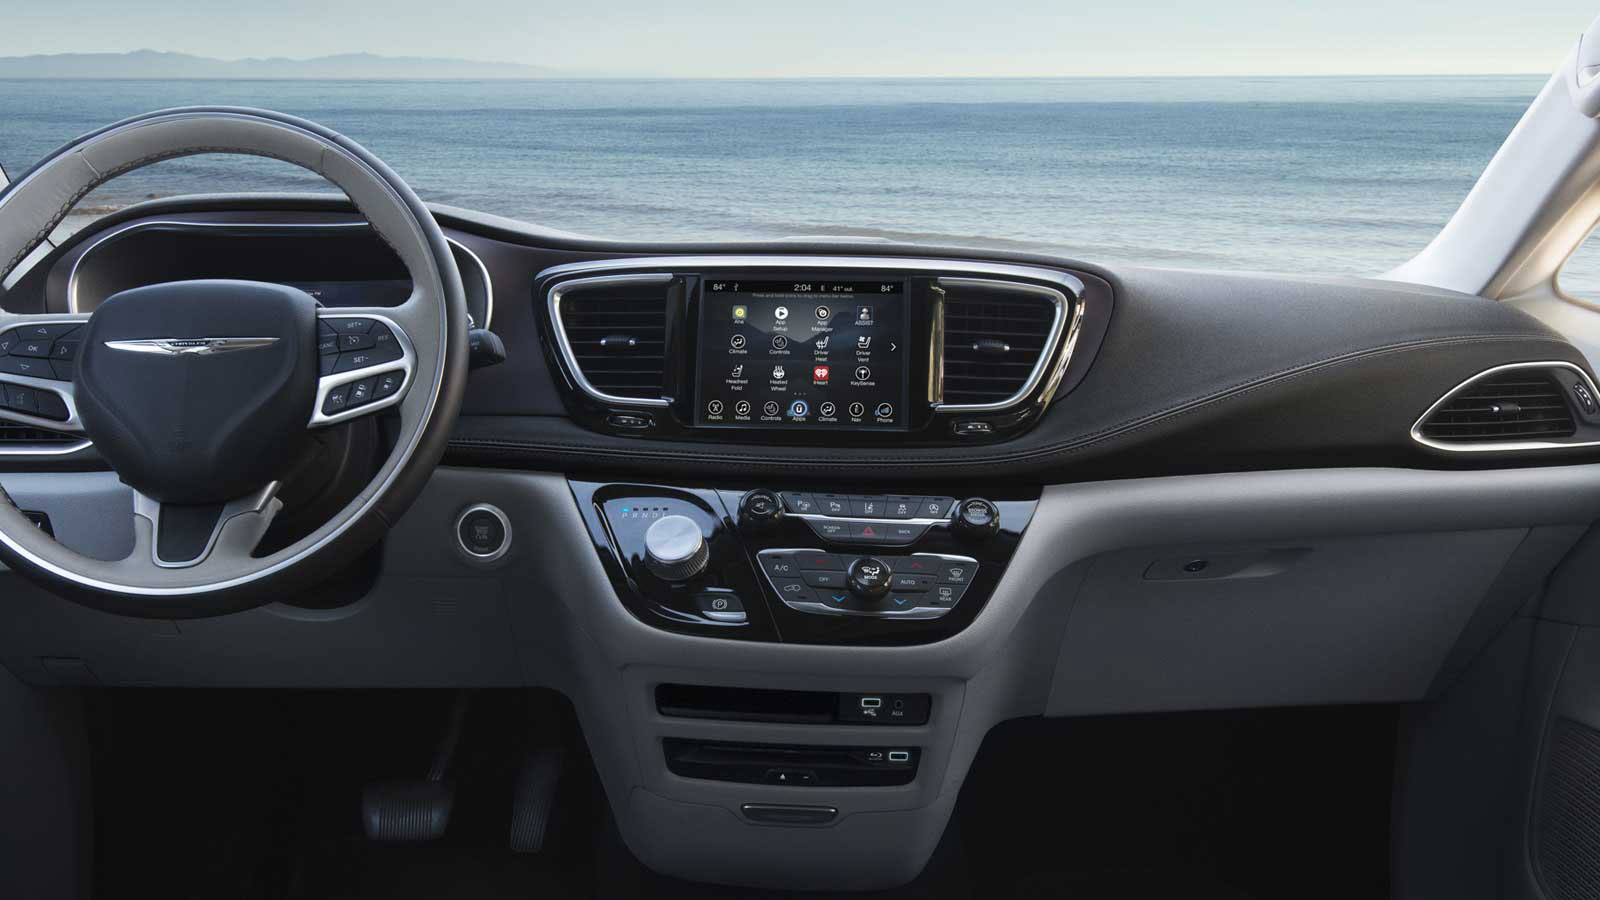 New Chrysler Pacifica Interior main image